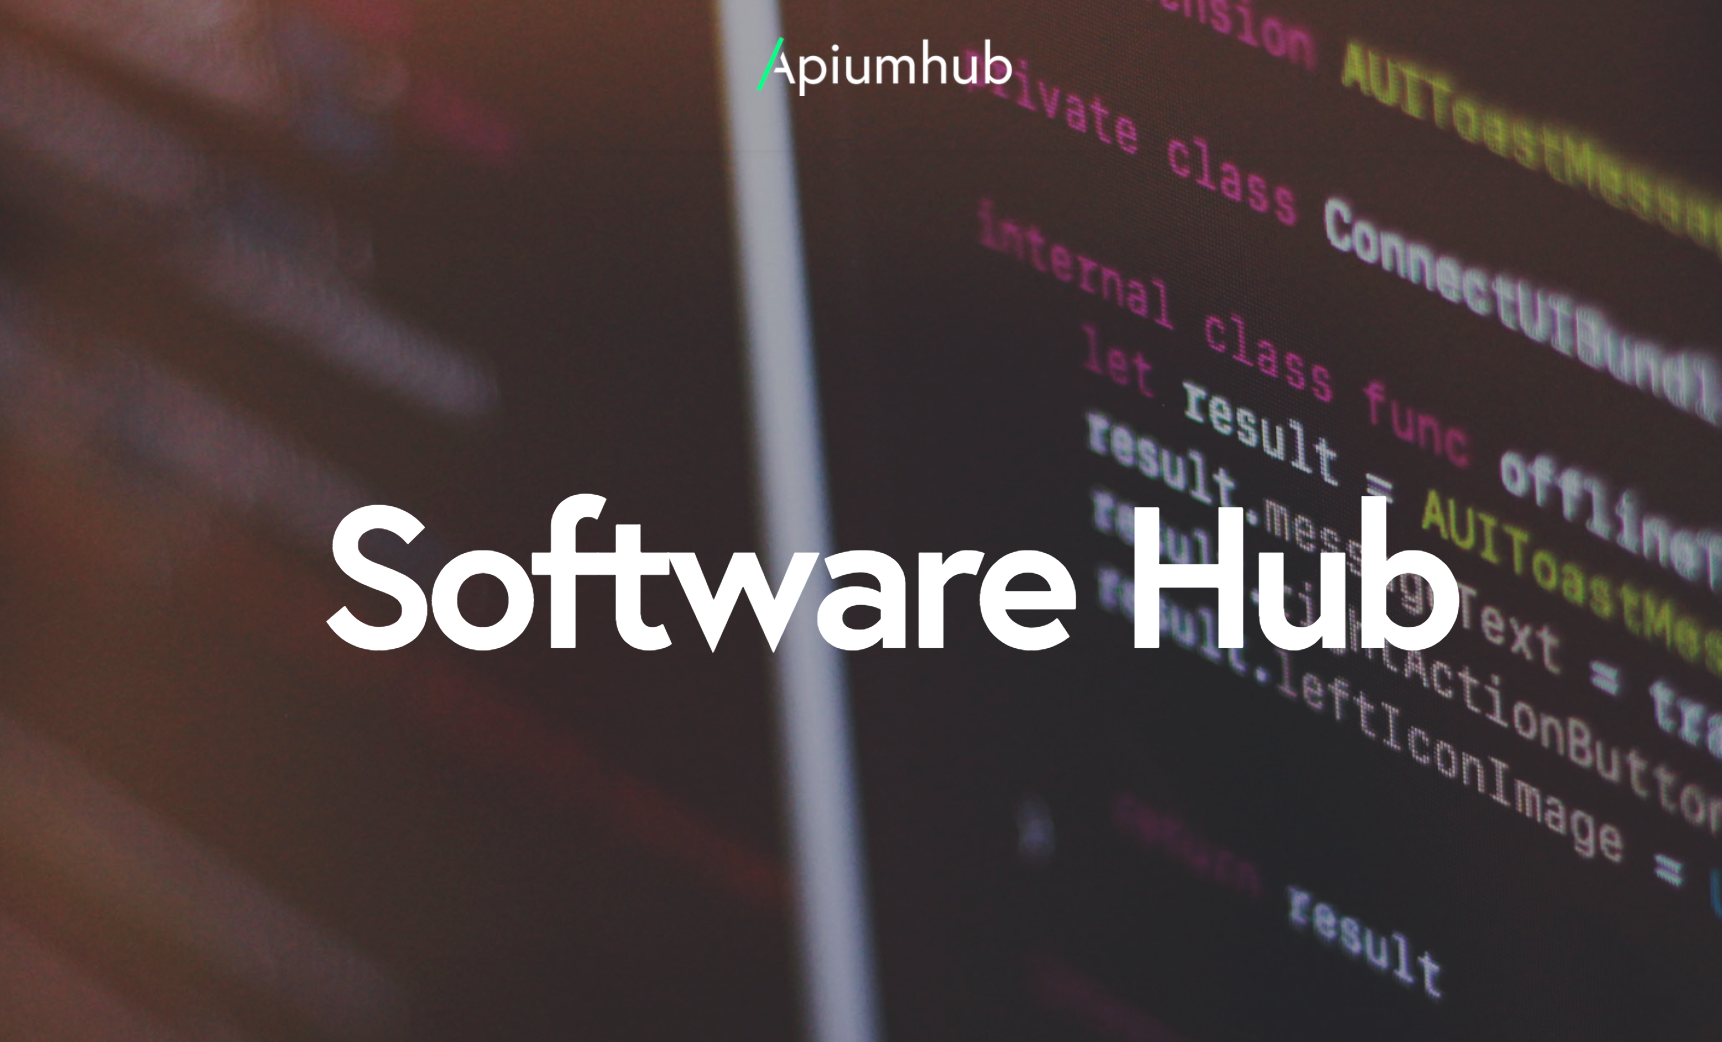 Apiumhub: Software architecture Meetups in Barcelona